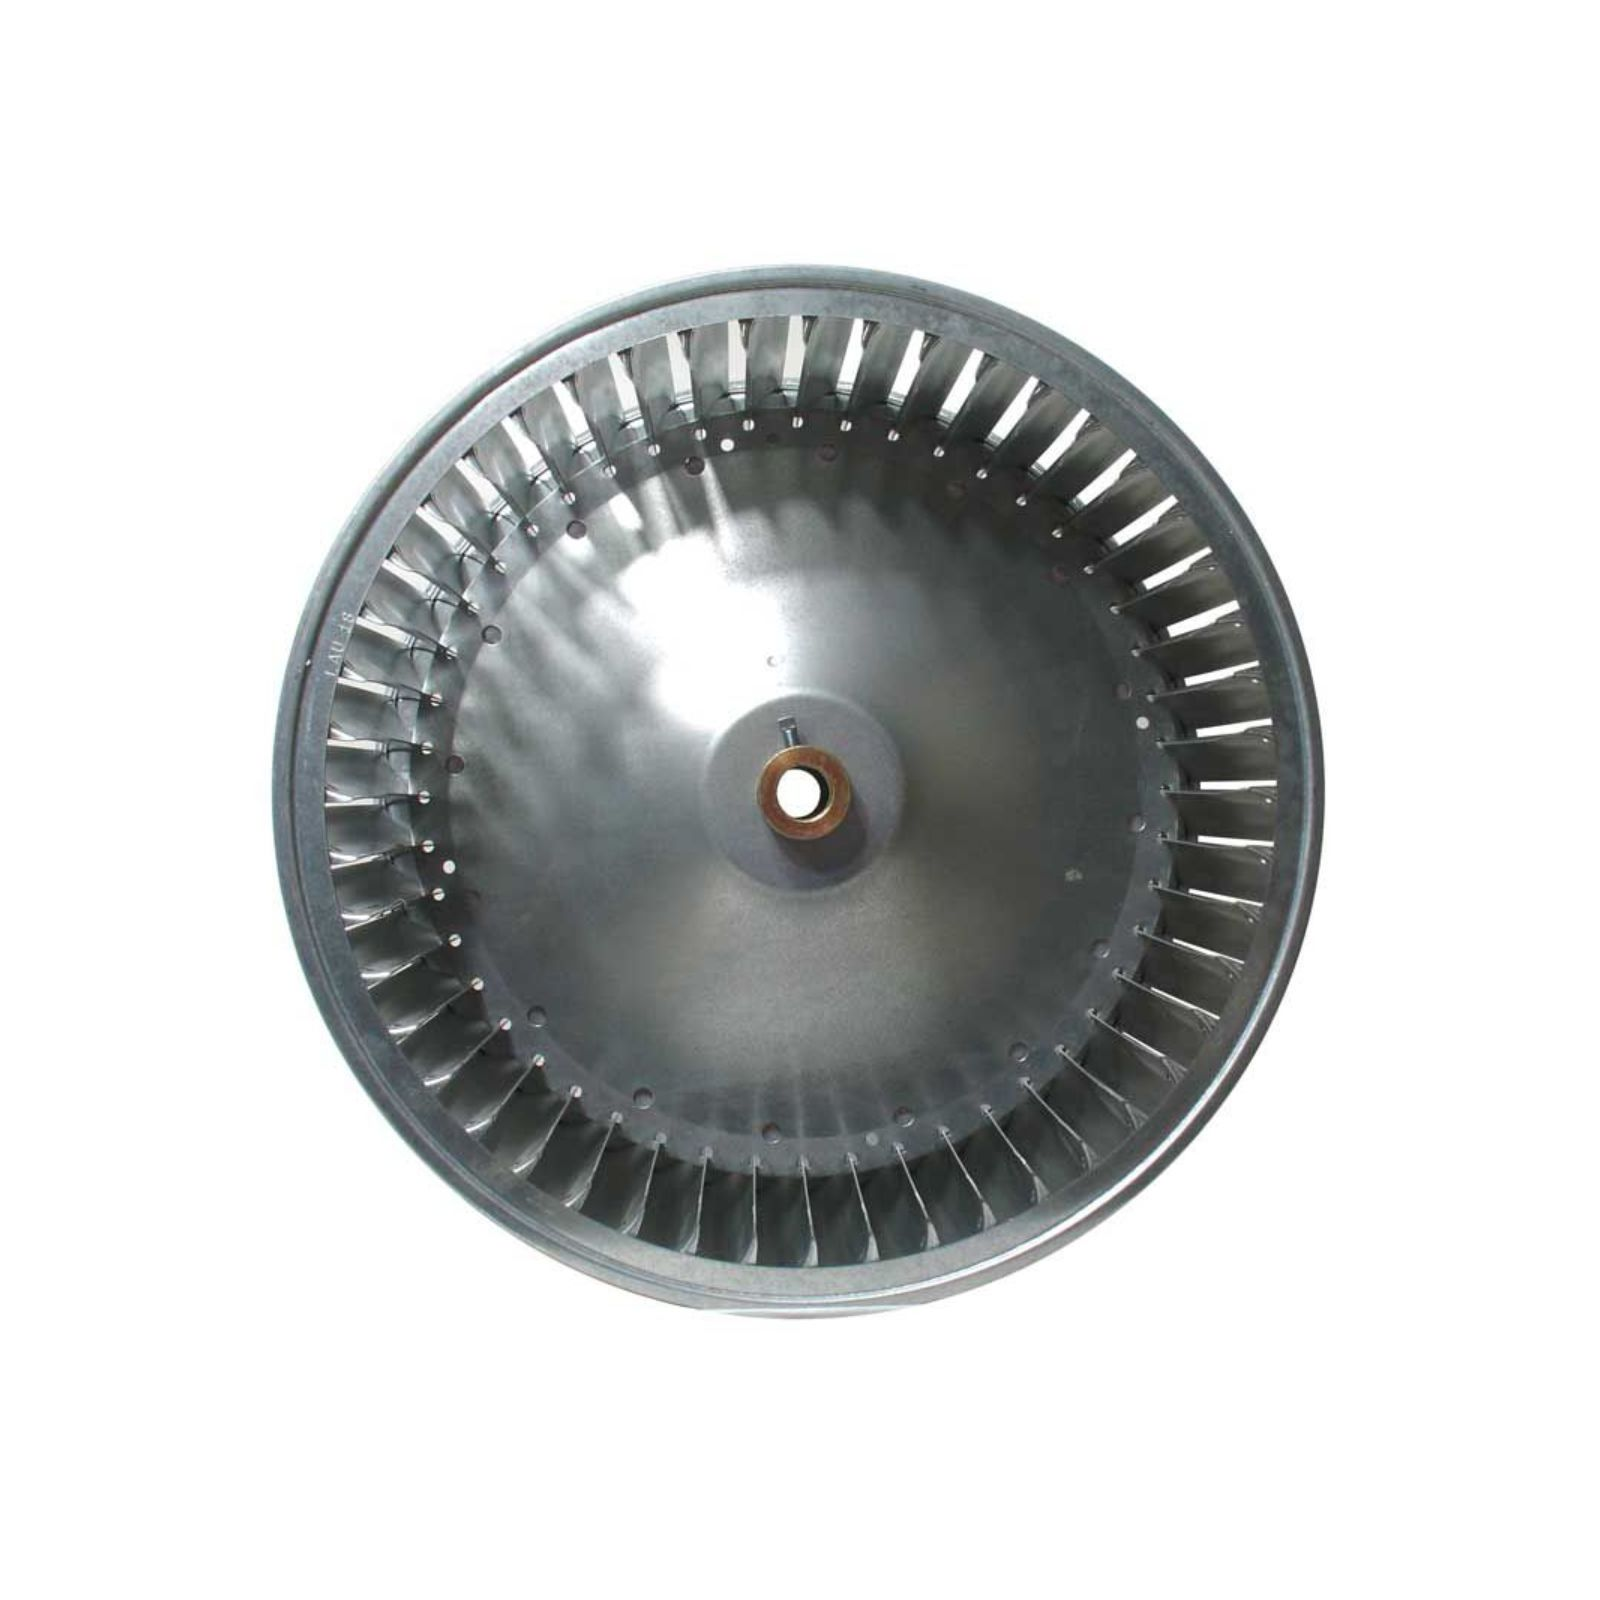 "PROTECH 70-24041-01 - Blower Wheel, 12"" x 11"", CW"